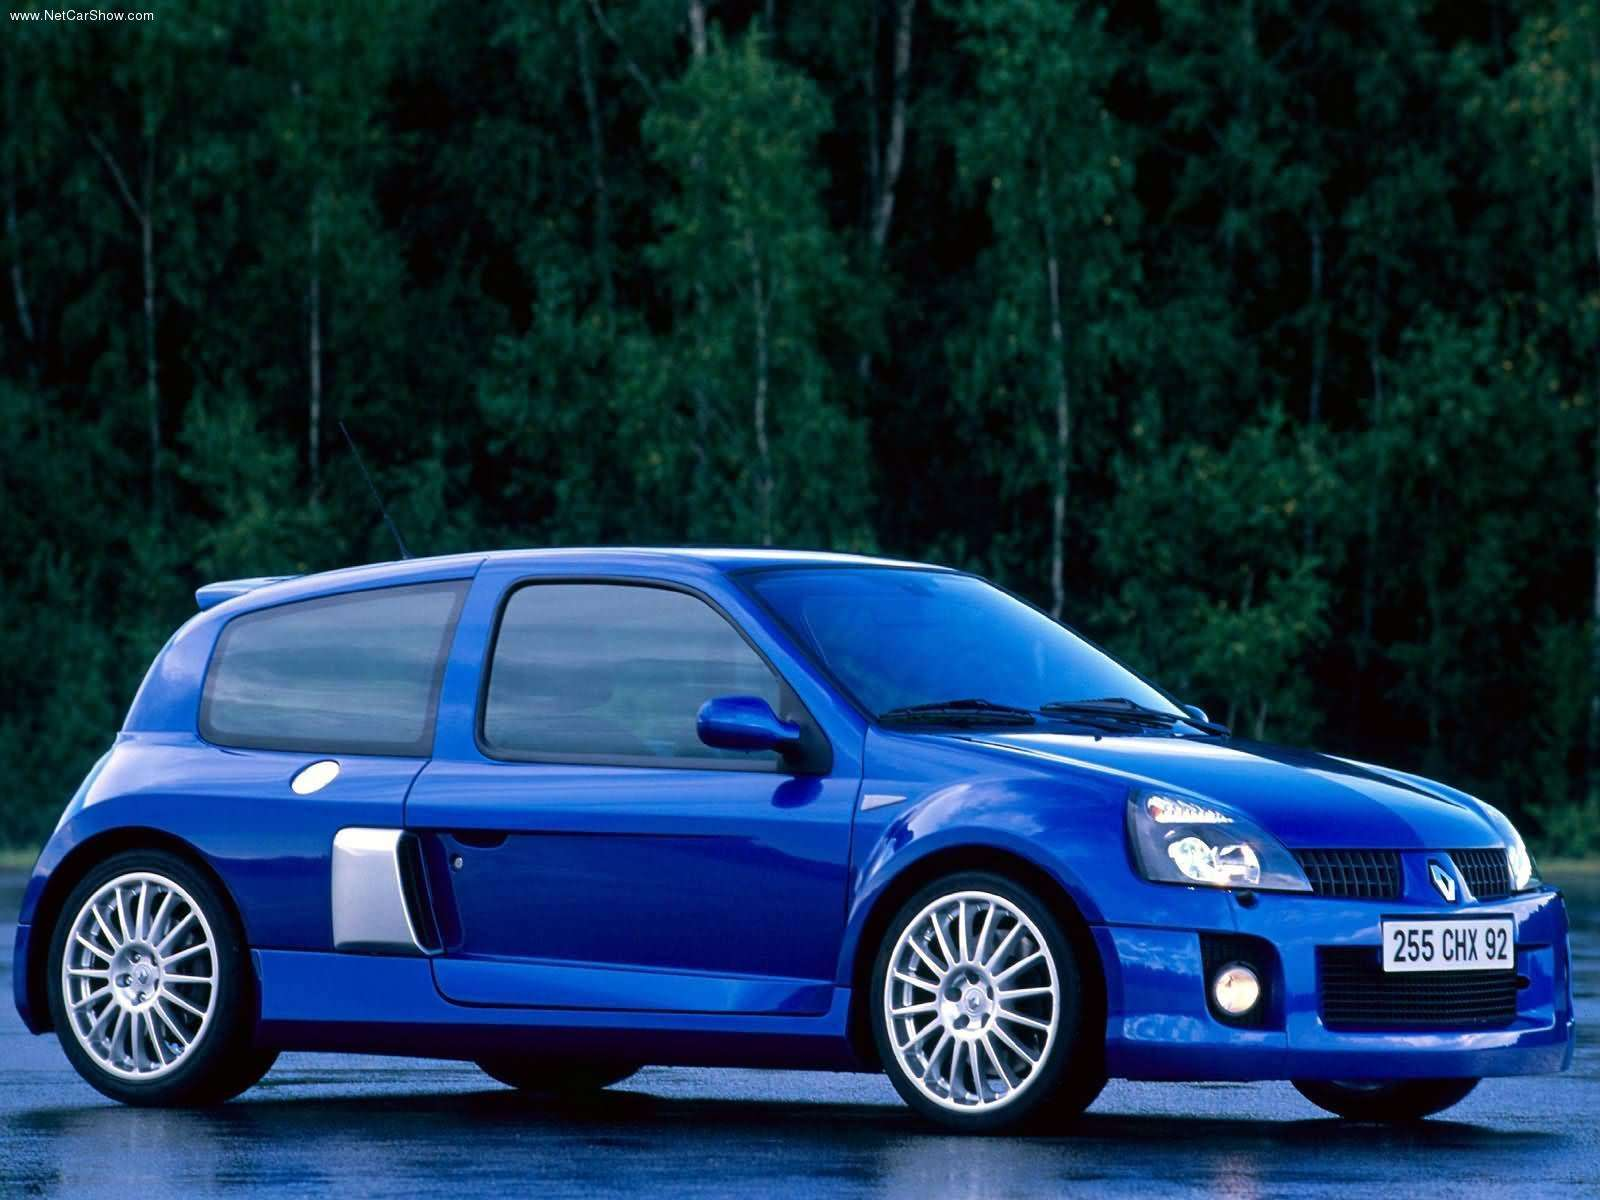 3dtuning of renault sport clio v6 3 door hatchback 2003 unique on line car. Black Bedroom Furniture Sets. Home Design Ideas